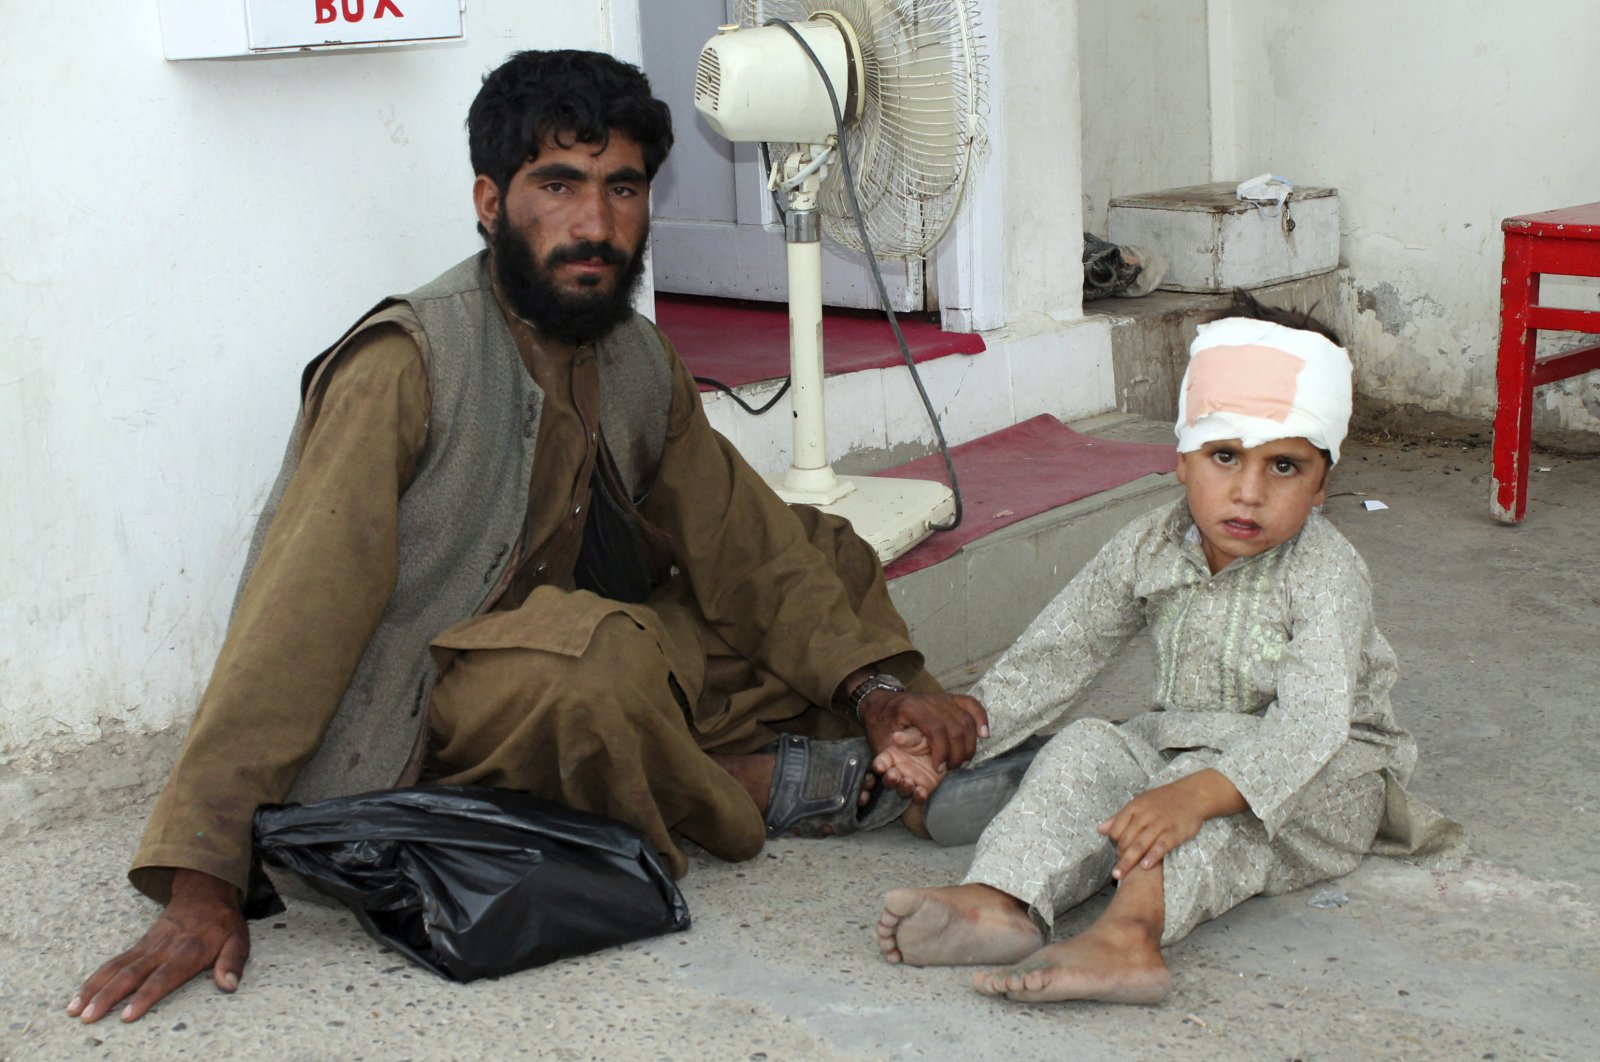 A boy who was injured boy in a deadly attack on a market sits on the ground at a hospital in Helmand province, June 29, 2020. (AP Photo)